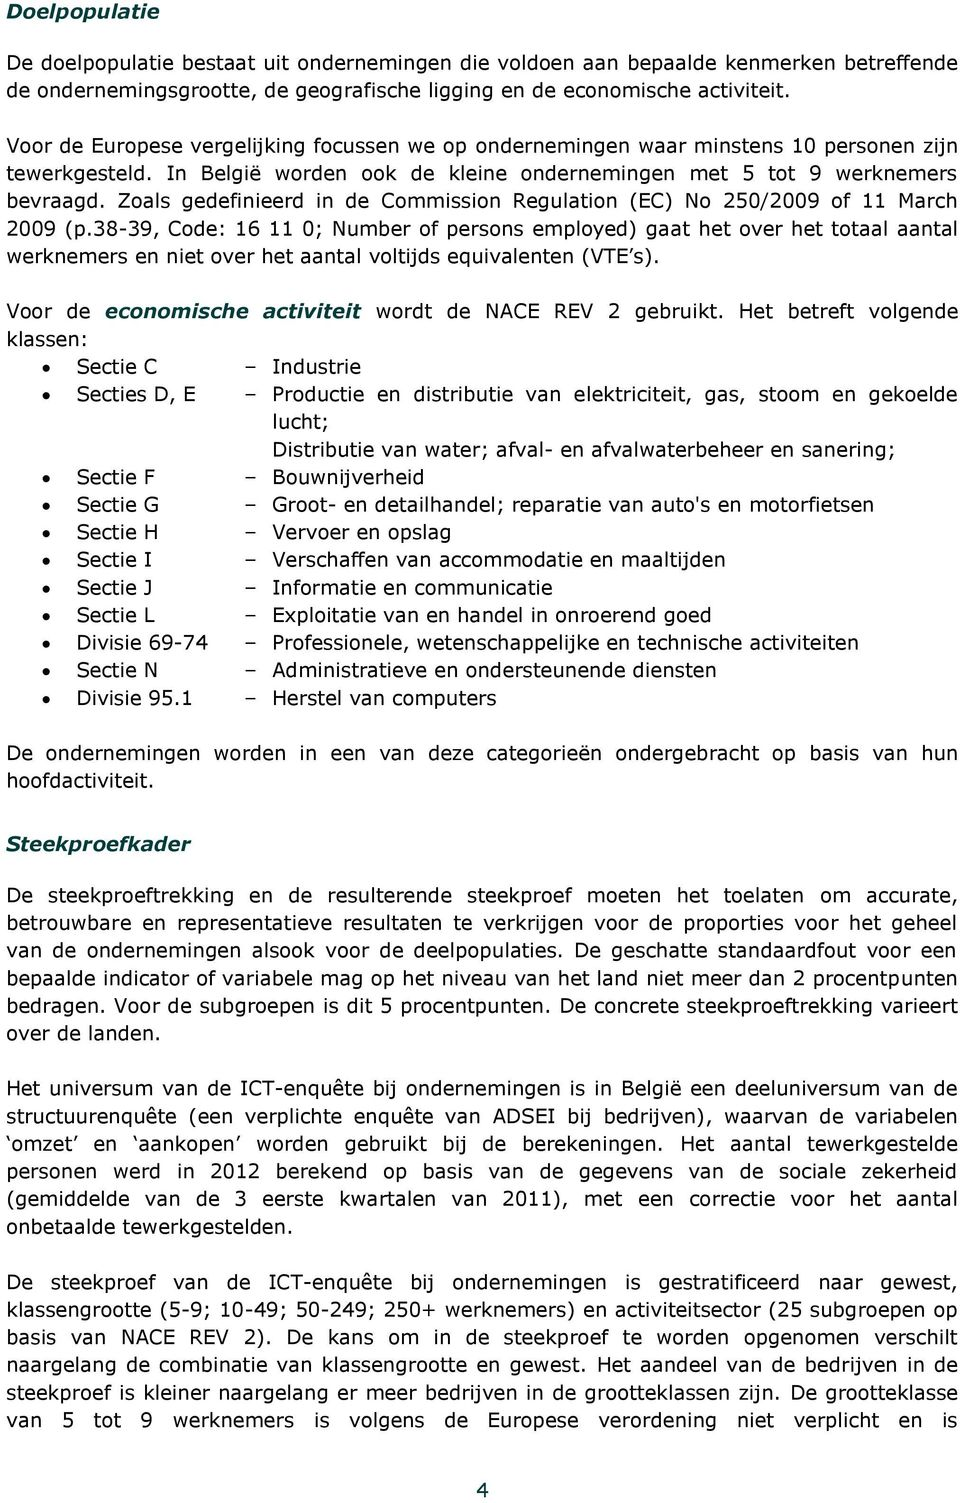 Zoals gedefinieerd in de Commission Regulation (EC) No 250/2009 of 11 March 2009 (p.